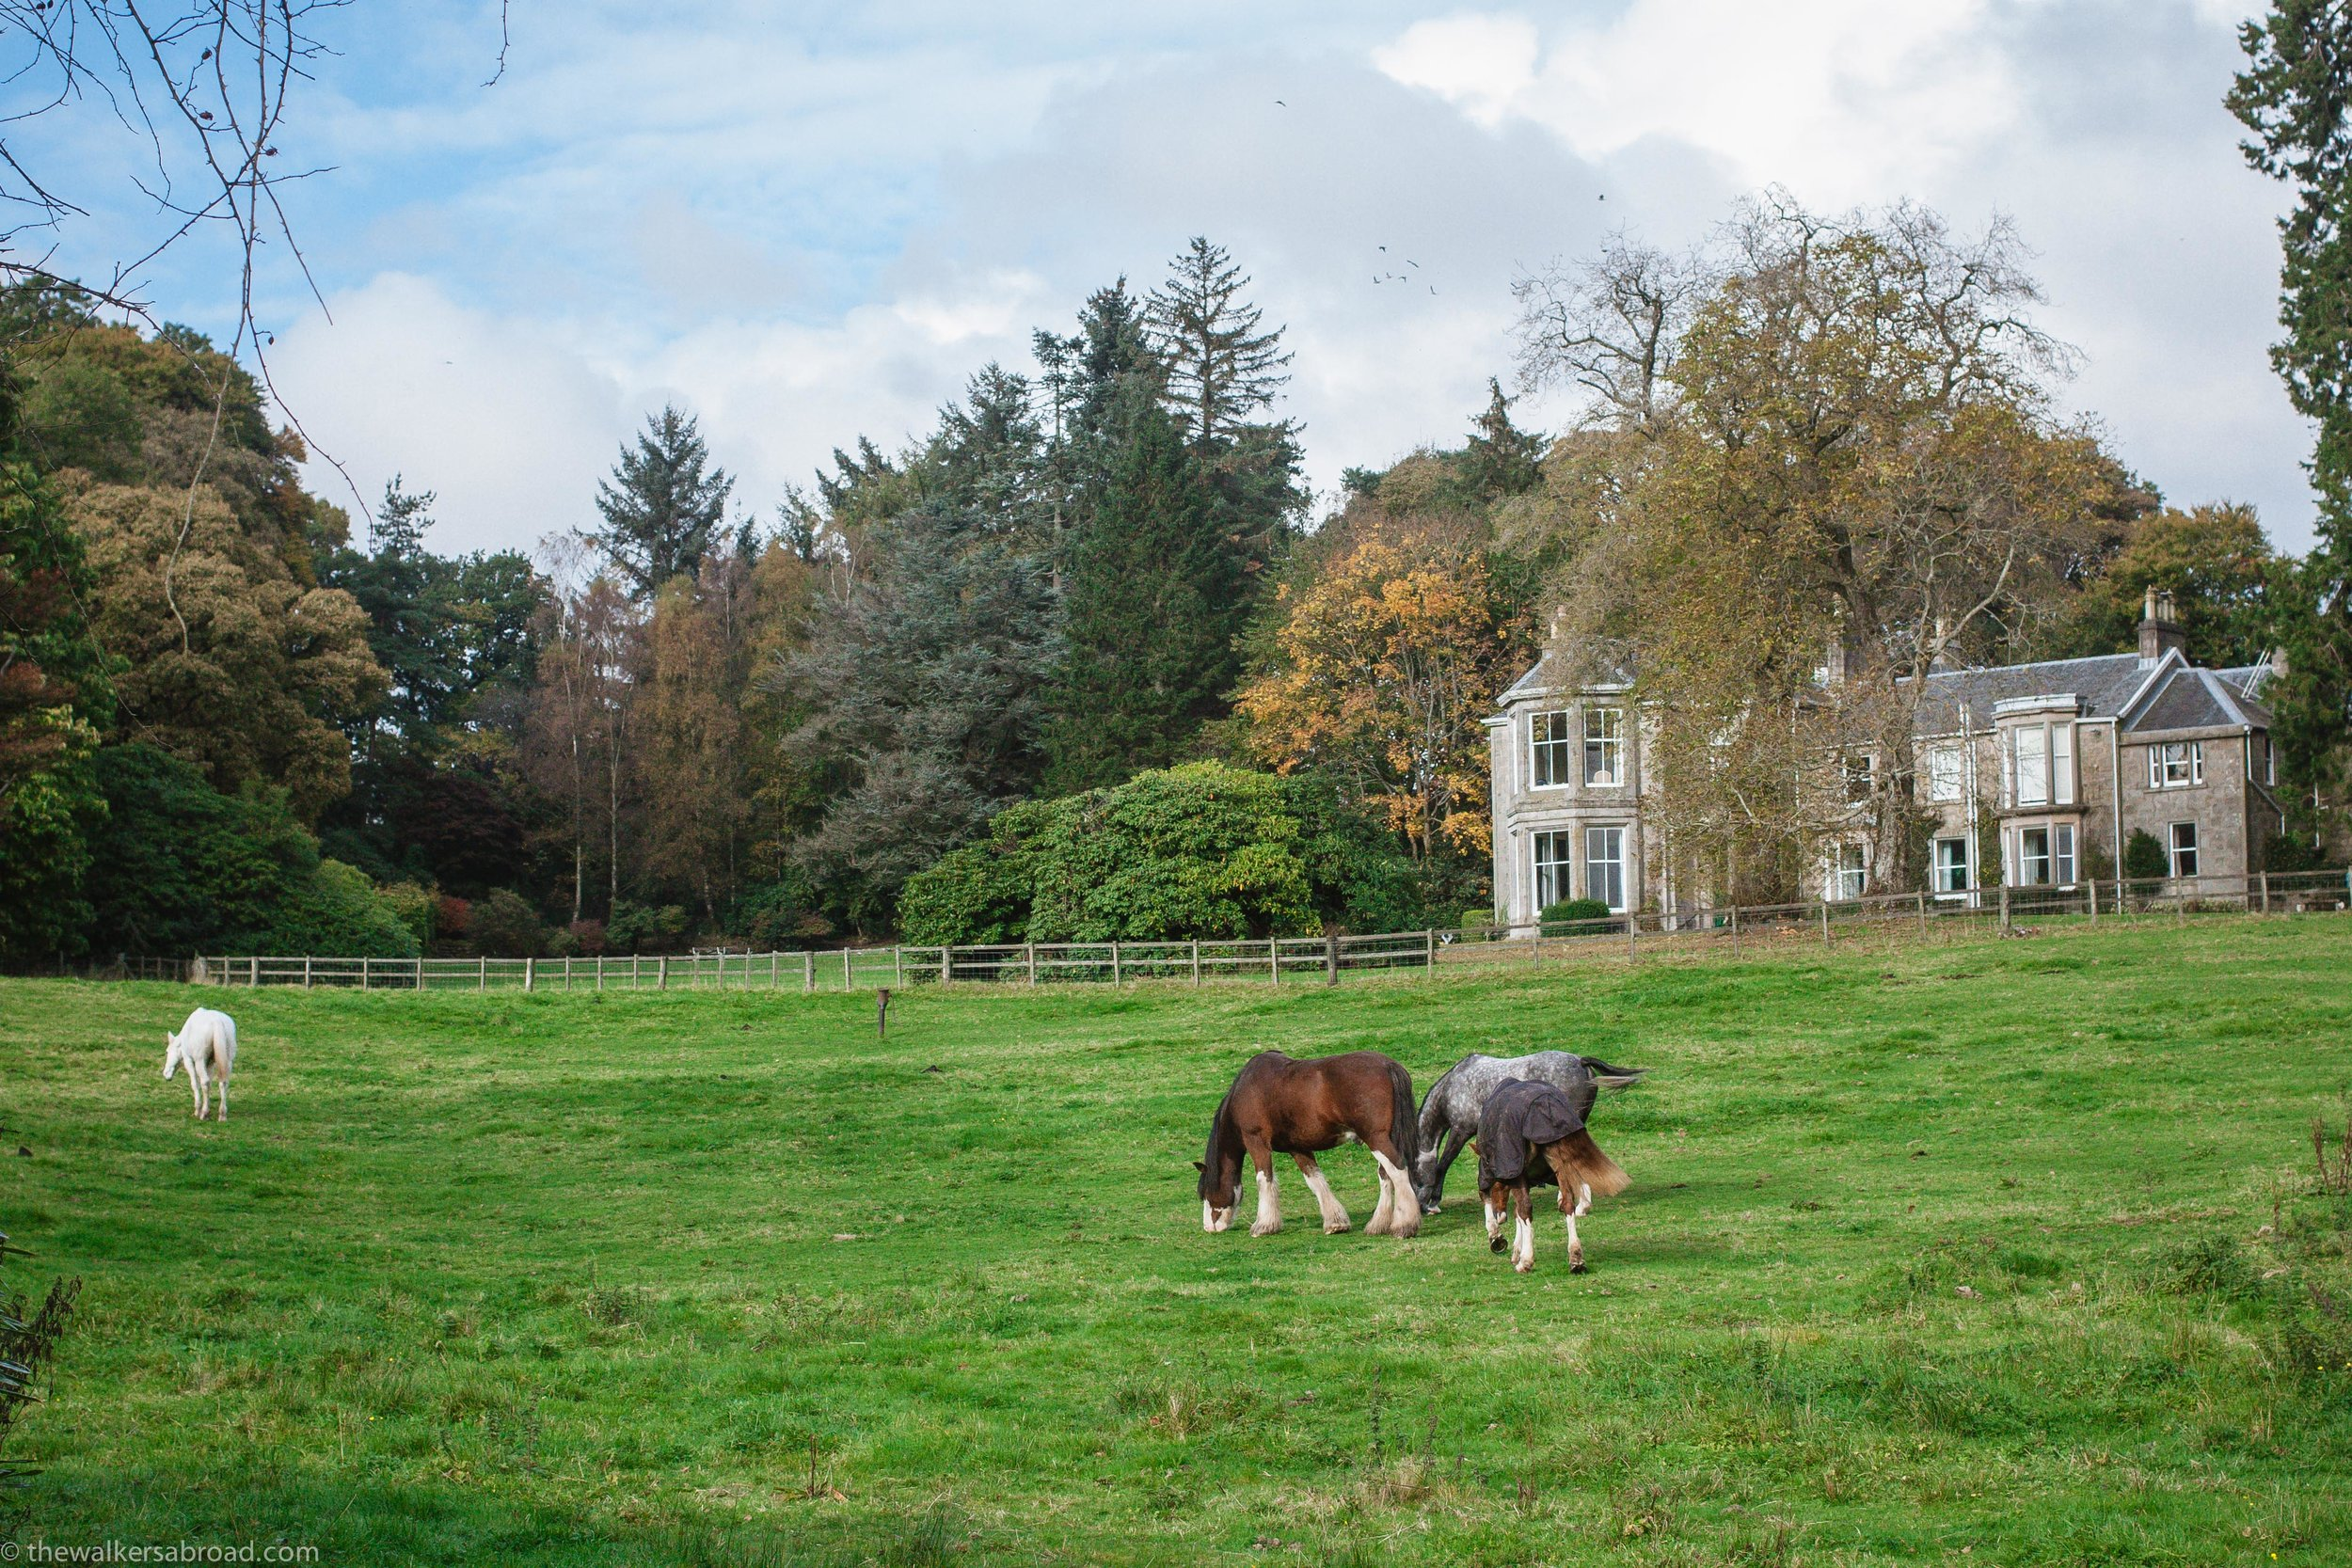 These pictures have nothing to do with communication, but are from a recent walk we had up to the Overtoun House.